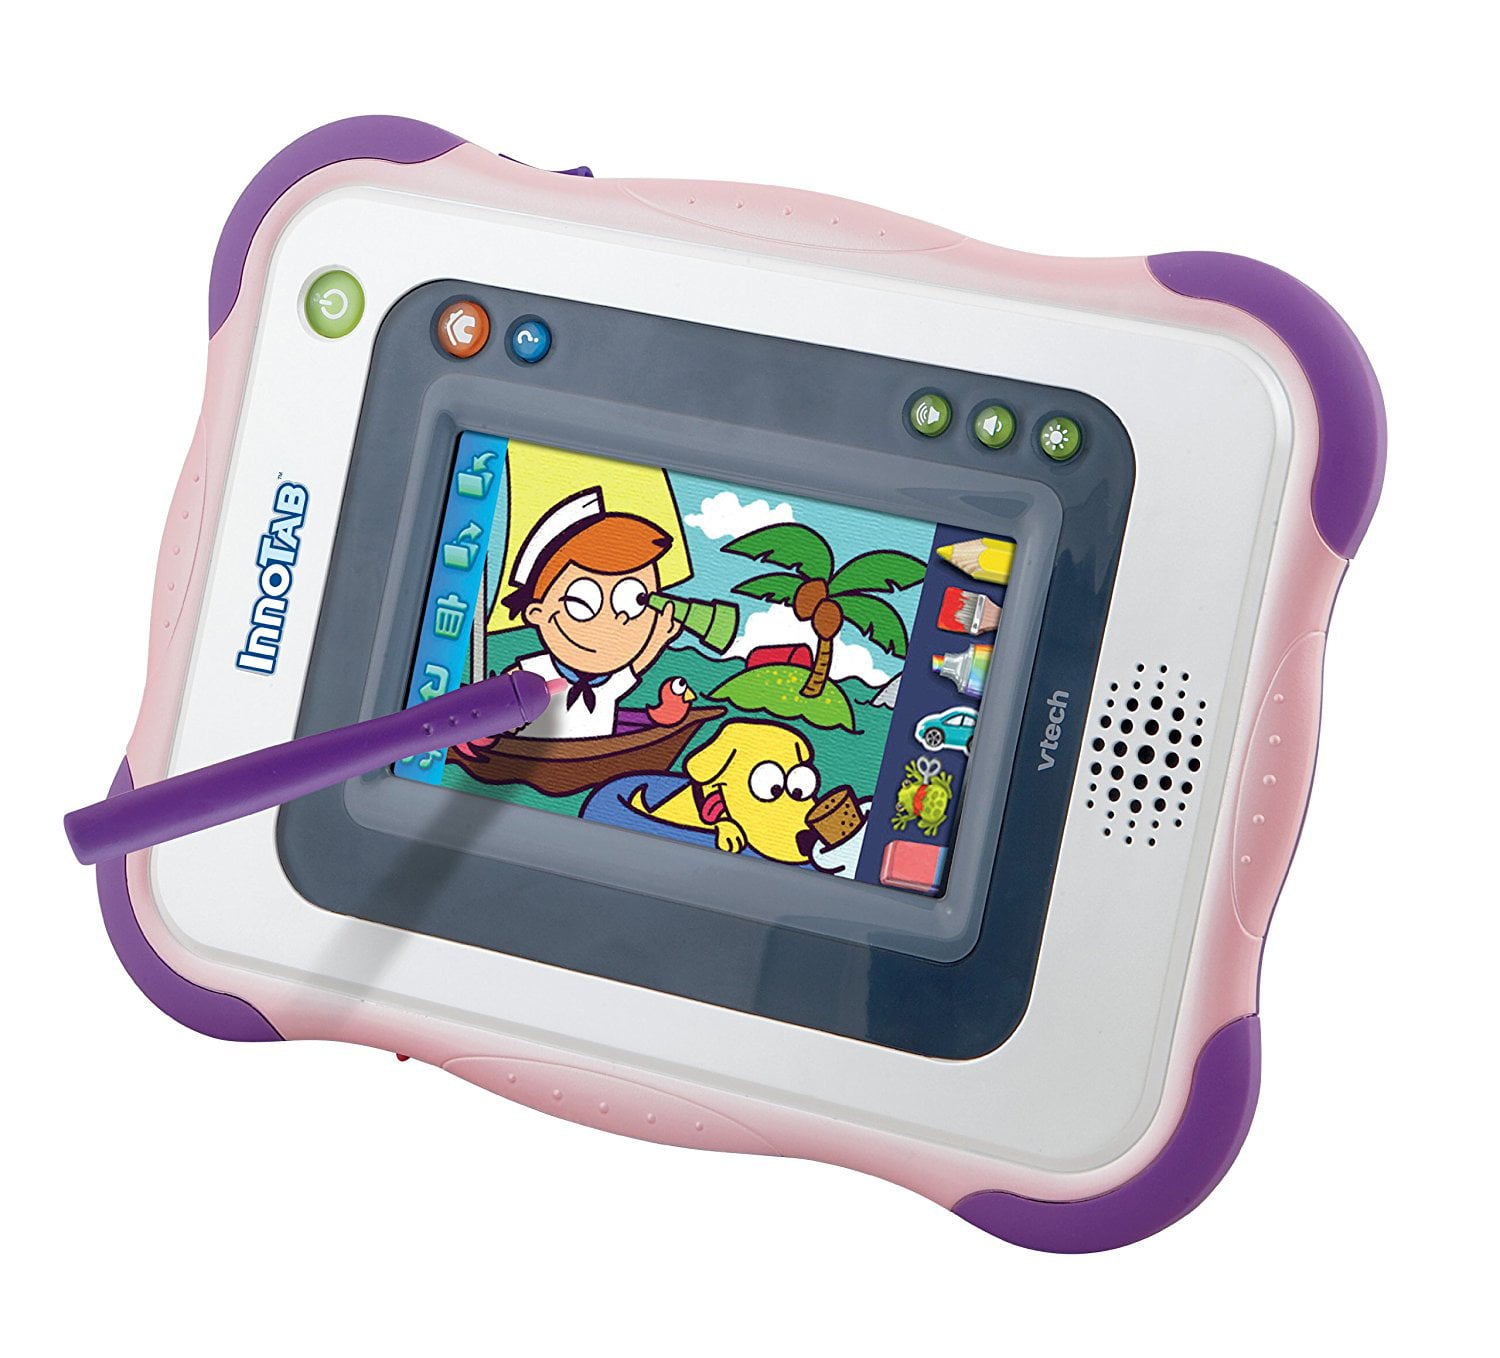 VTech InnoTab 1 Kids Tablet, Pink by